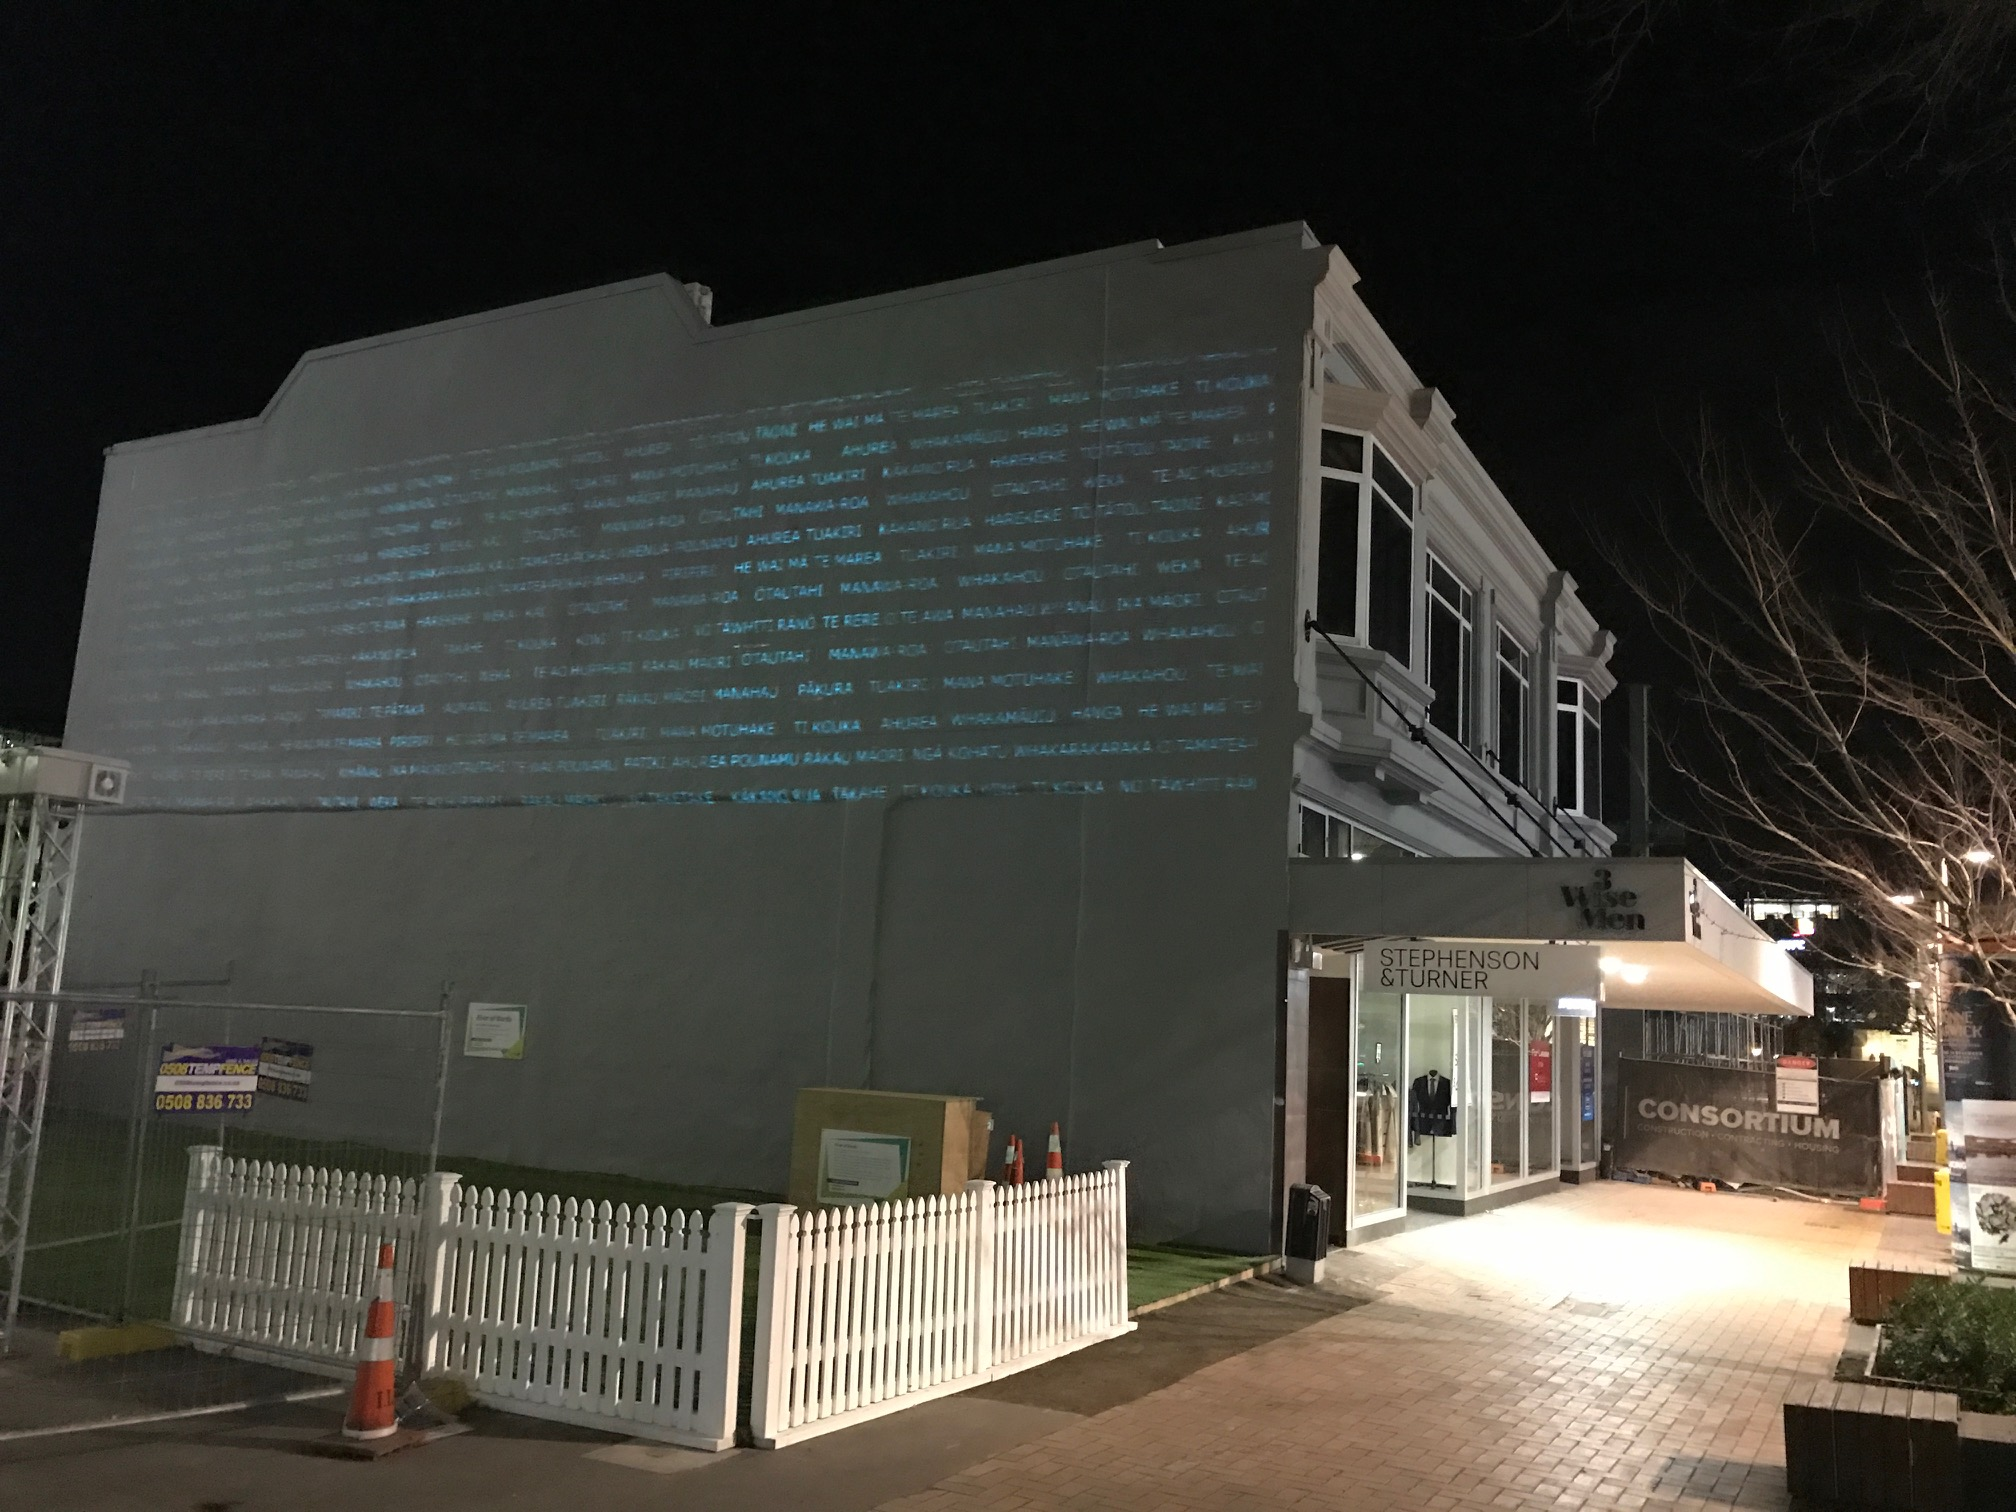 A blank wall features a projected poem